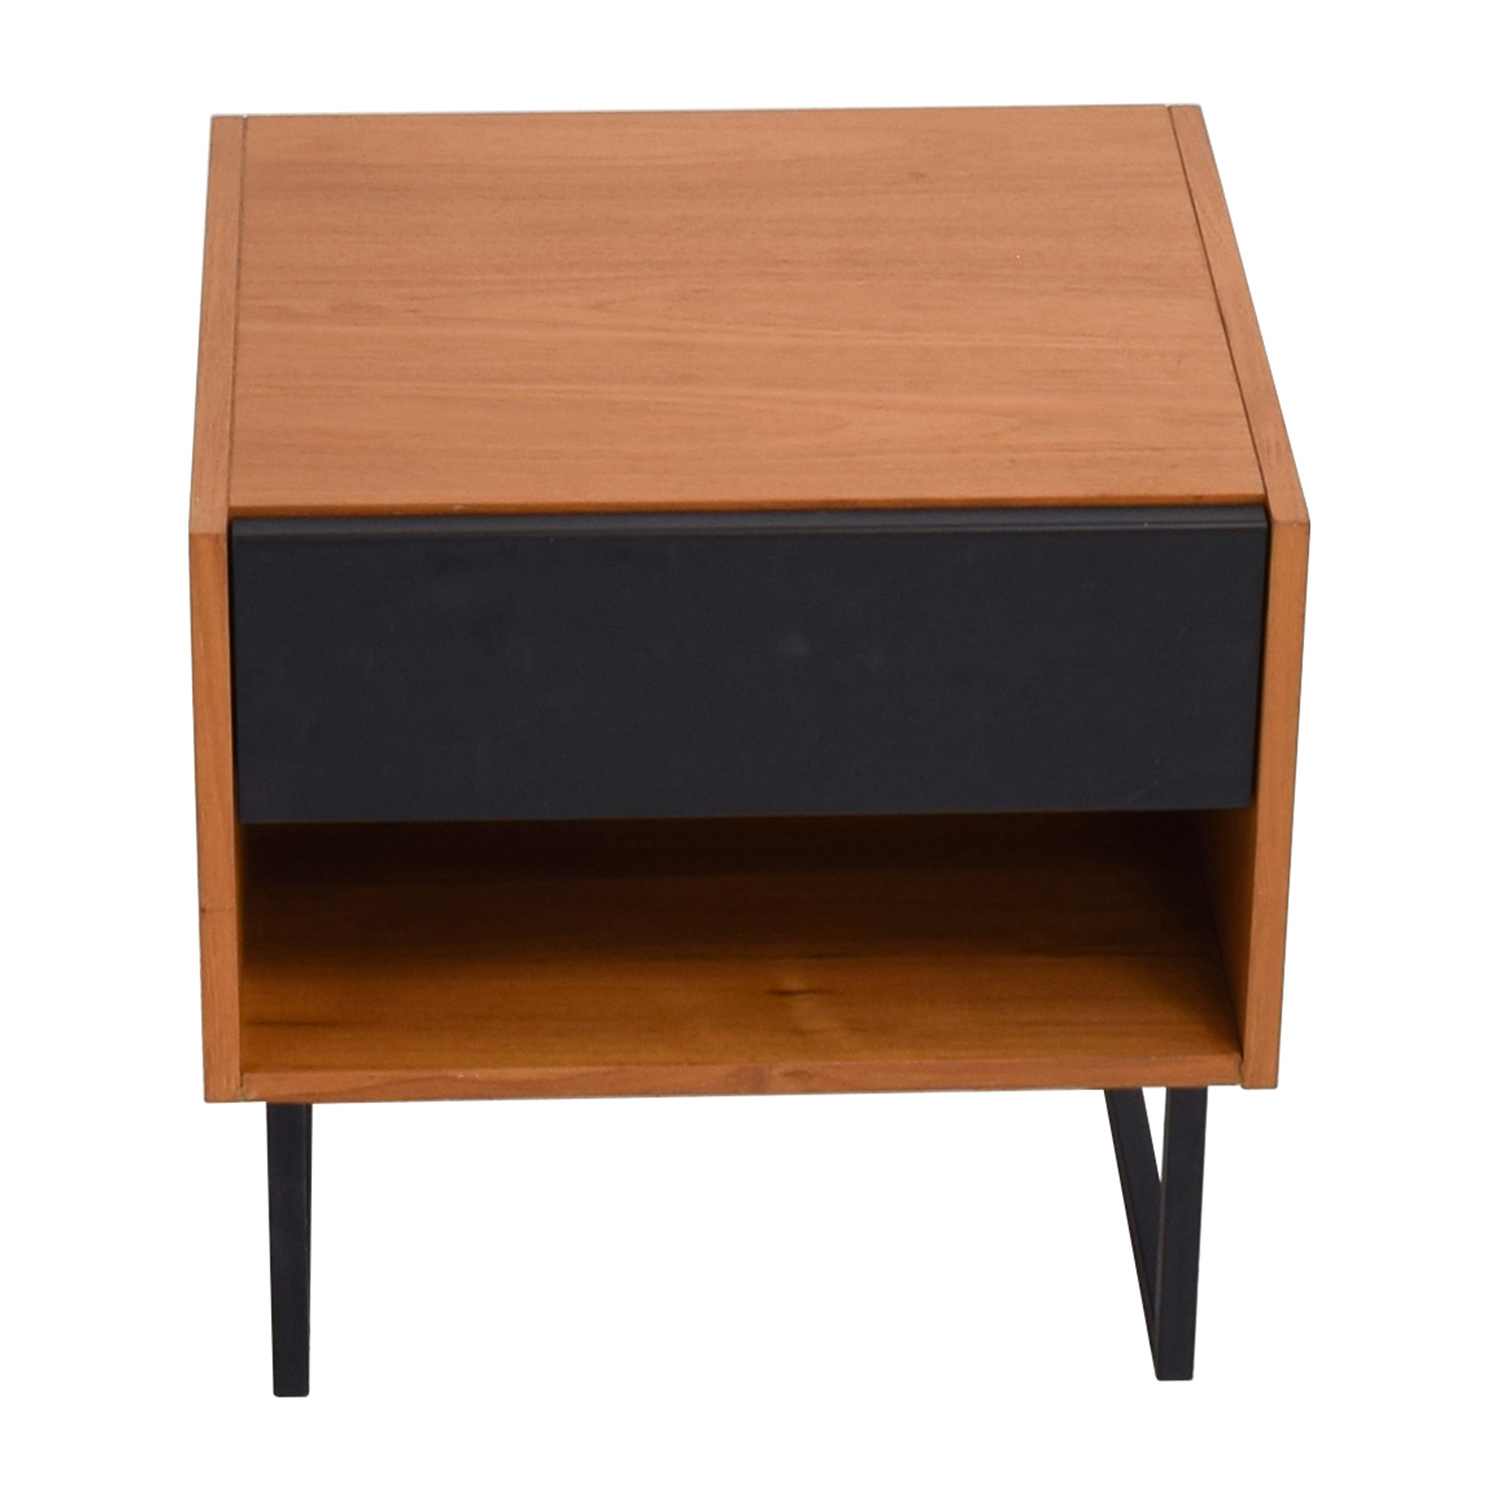 off crate barrel brown black lacquer table and marilyn accent ikea night wood coffee with drawers patio furniture saskatoon cabinet door knobs entry hall chest barn style kitchen